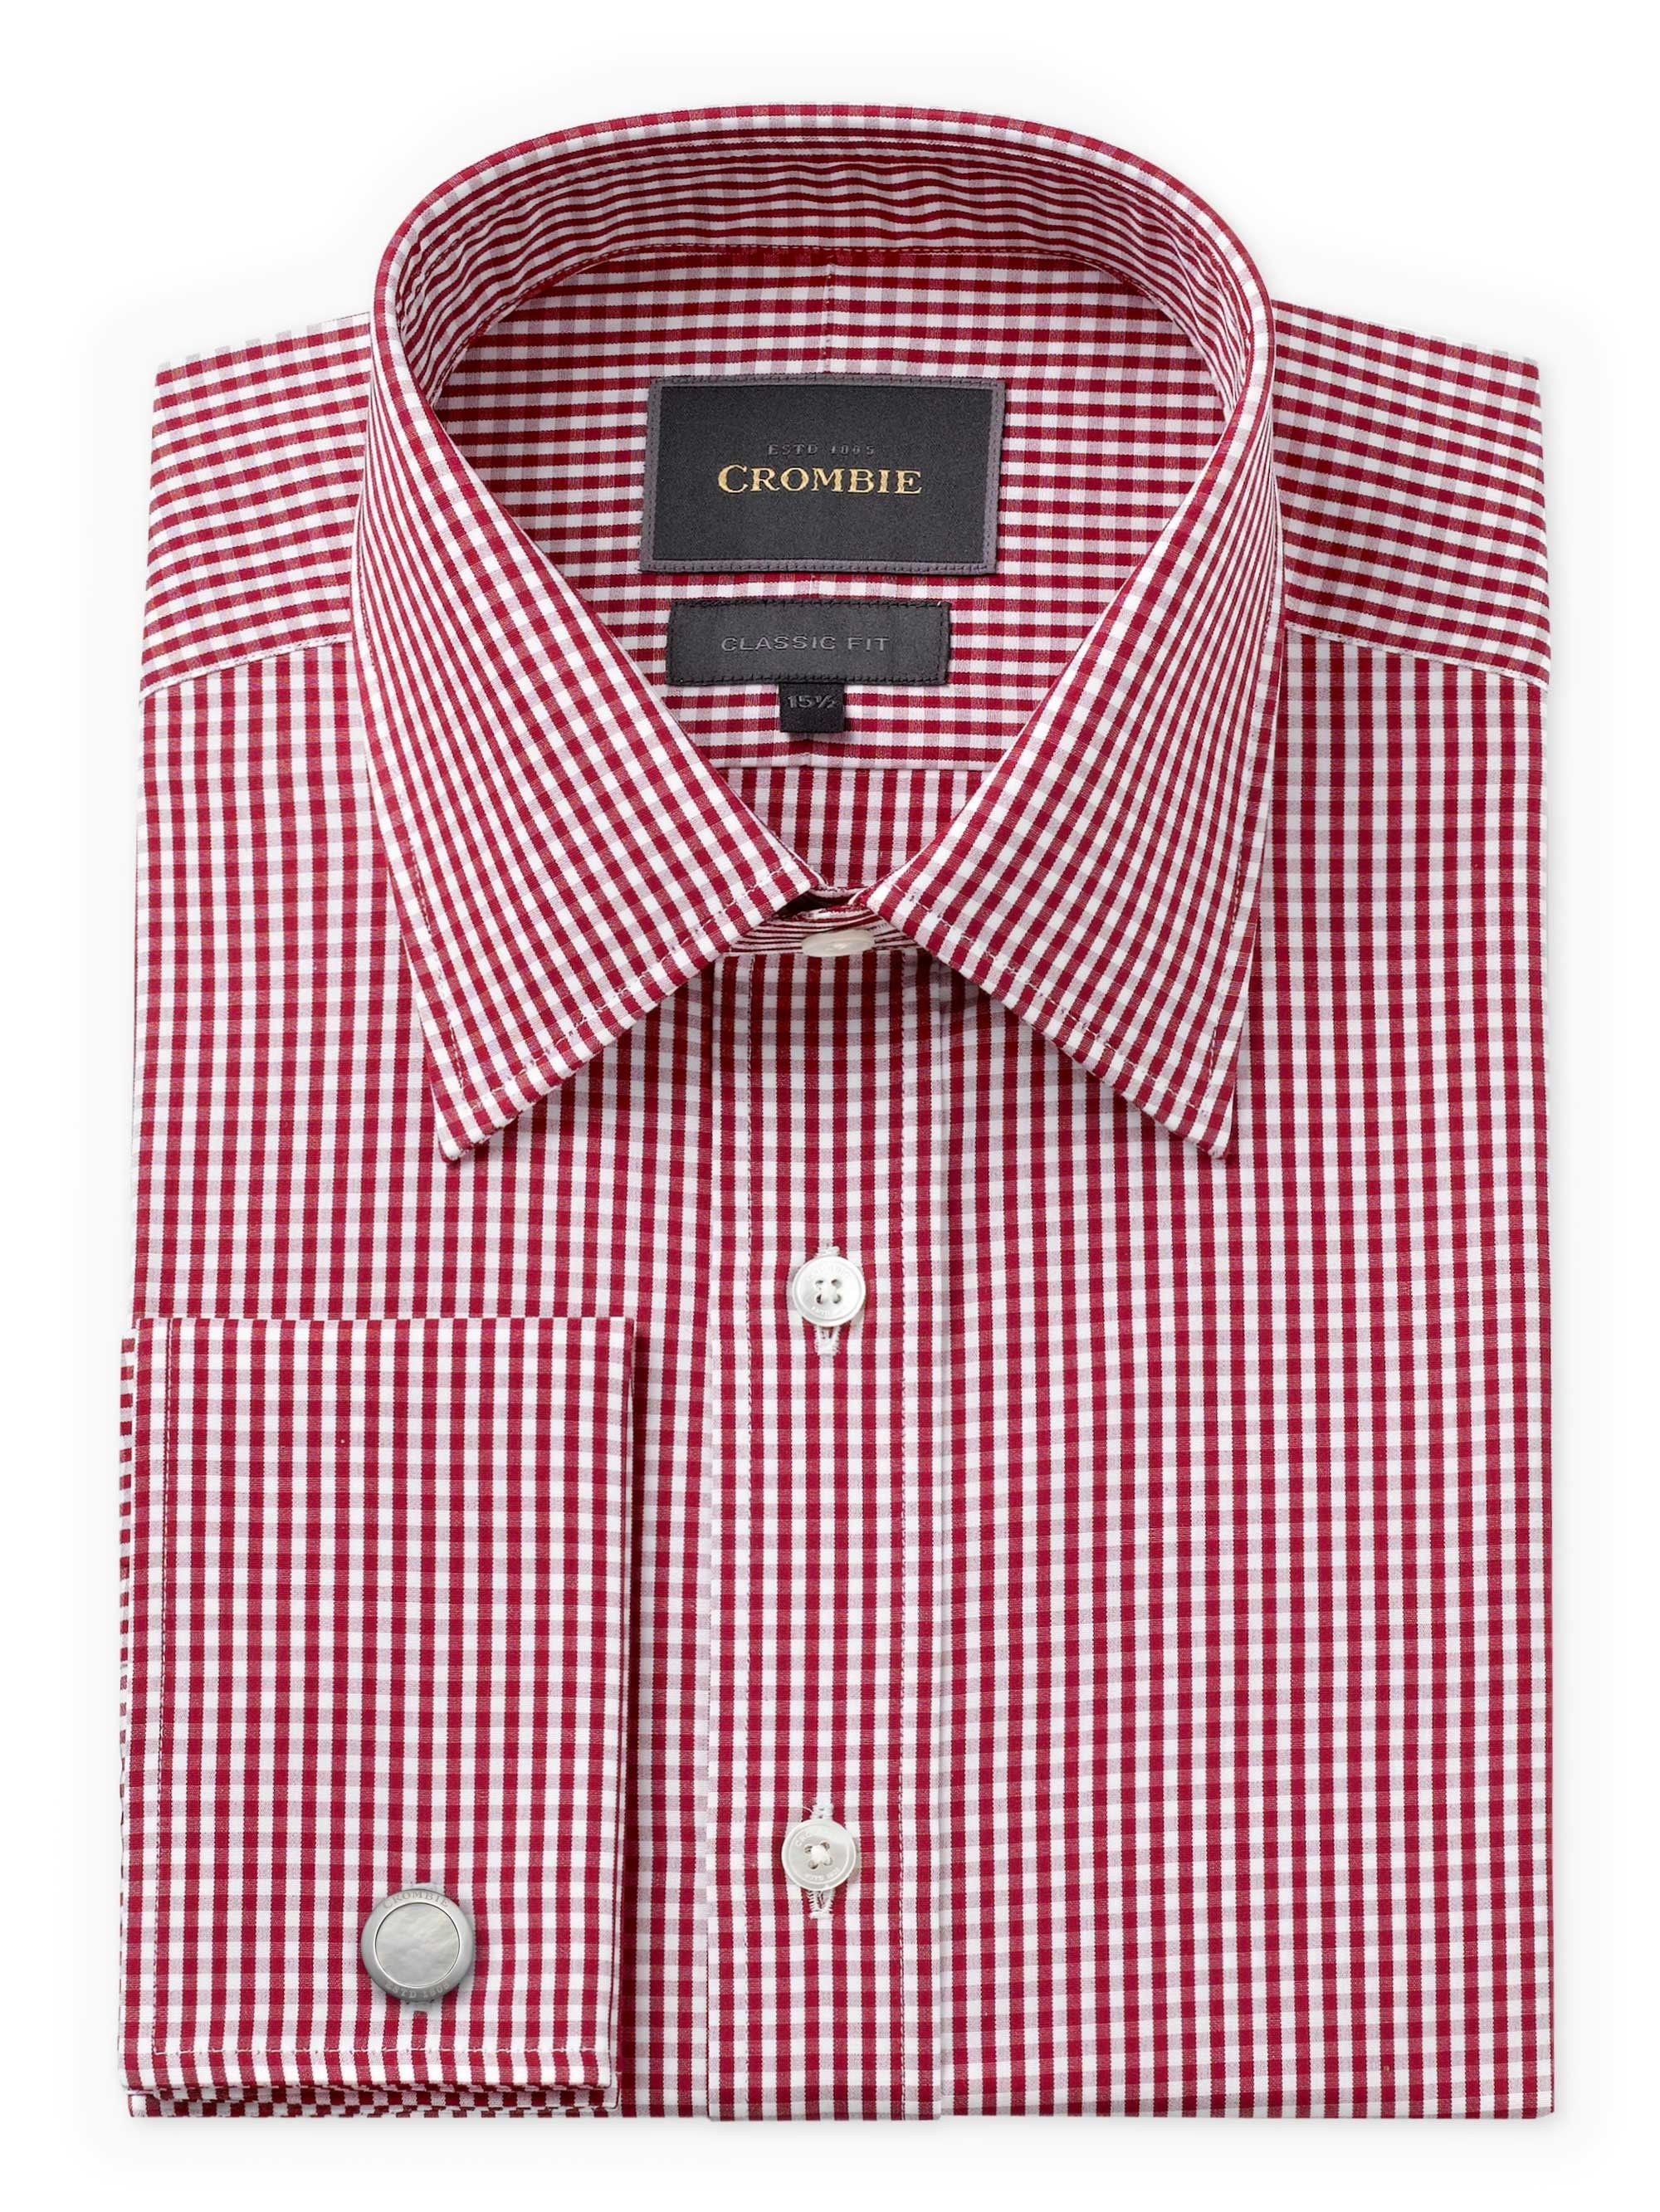 Pin By Chris Smith On Mens Big And Tall Fashion Pinterest Shirts